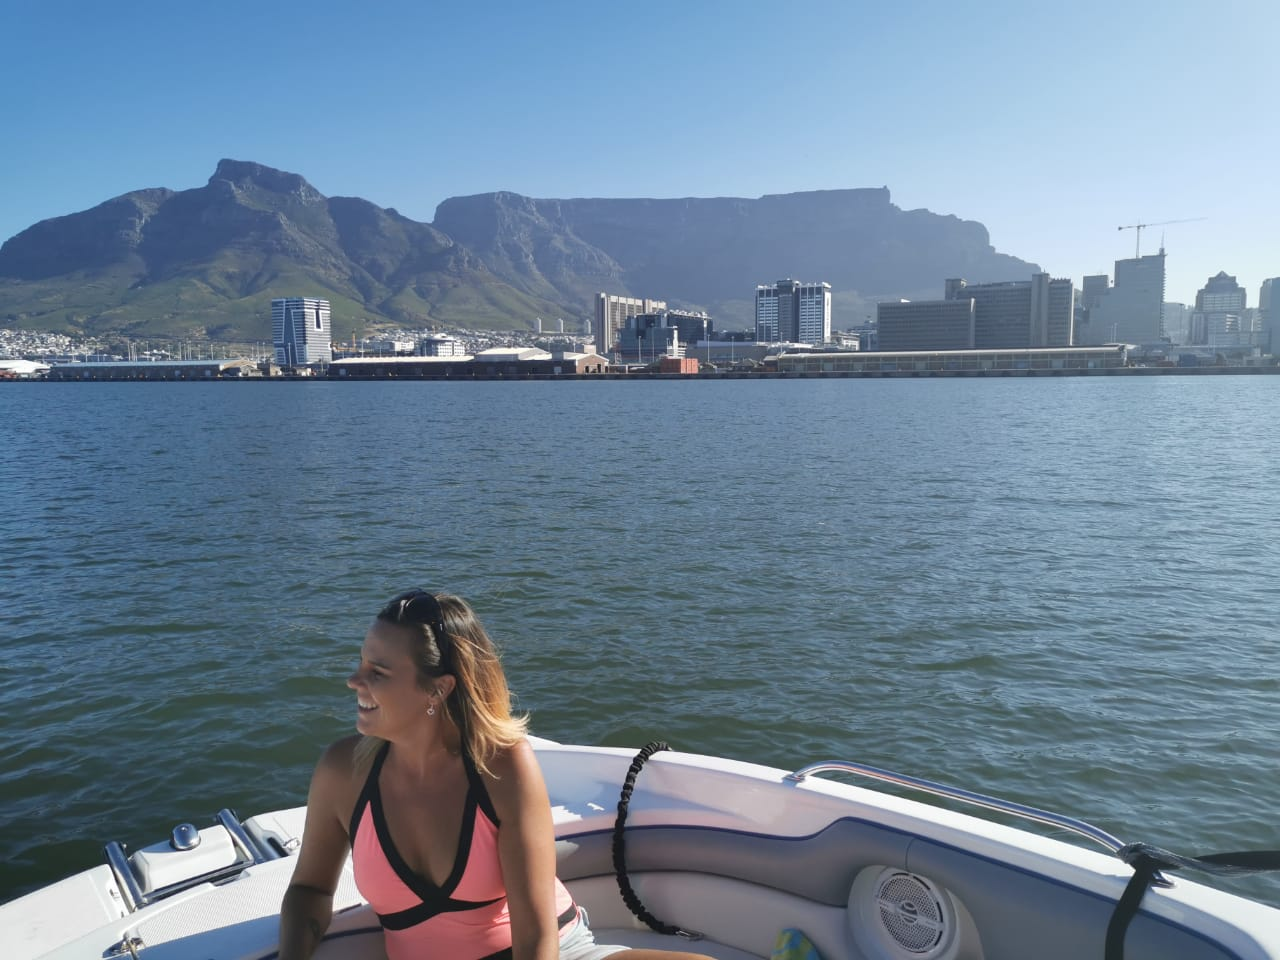 Boat Trip in Cape Town Harbor with Table Mountain in the background